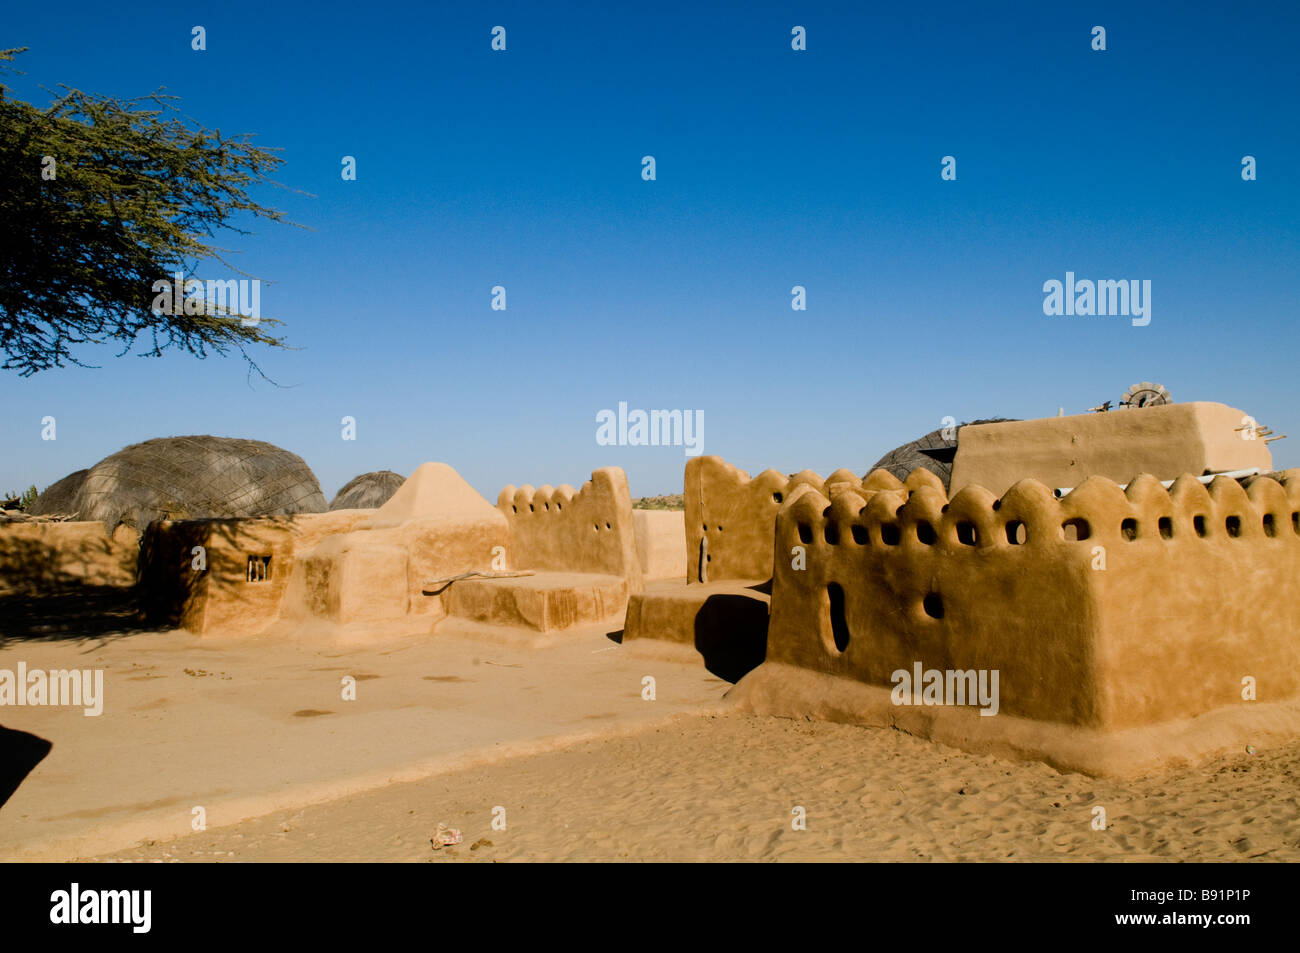 Beautiful desert architecture as seen in a small village in